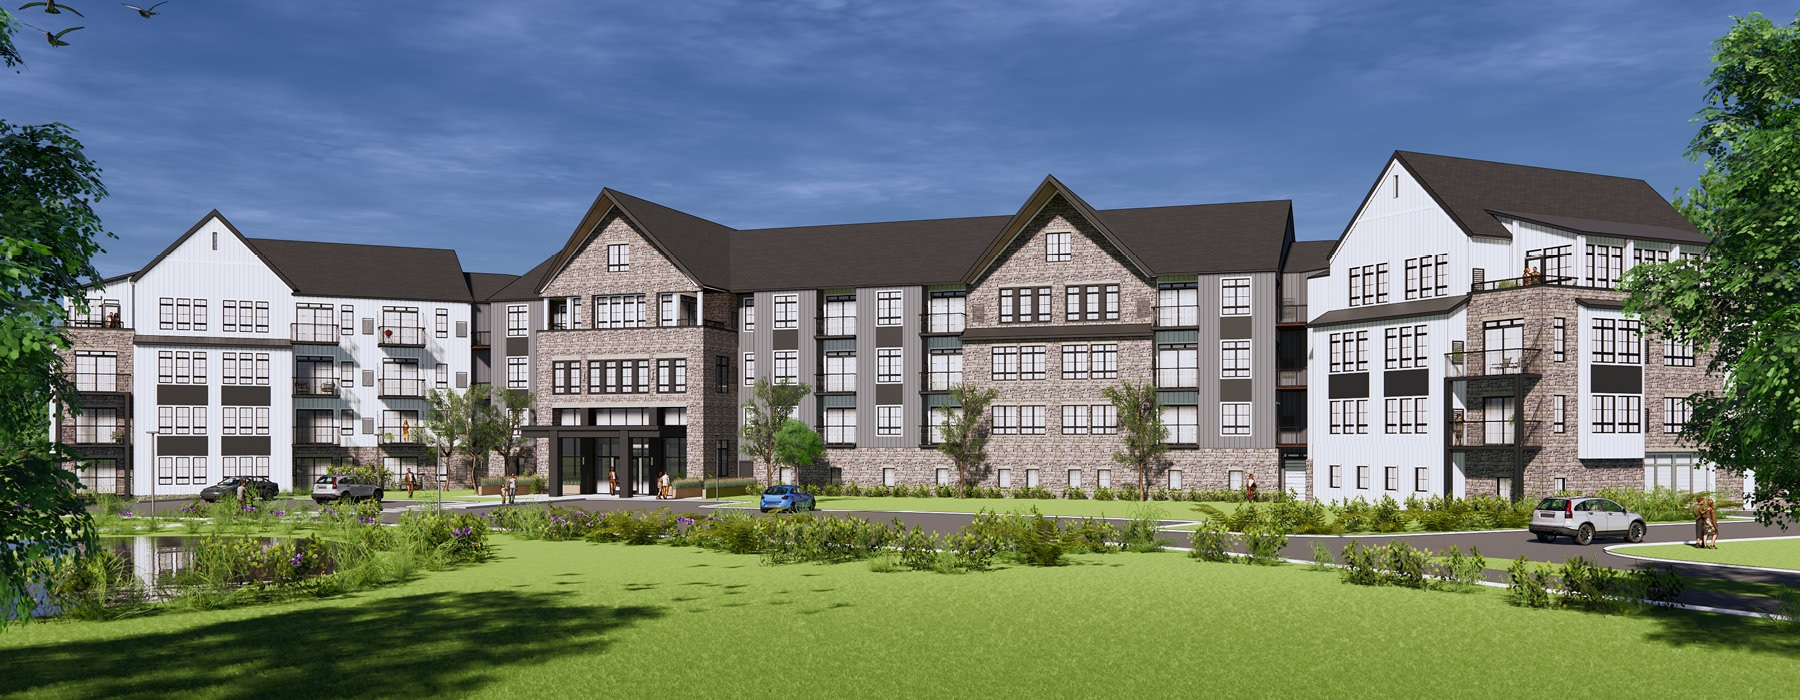 rendering of the Reserve at Sono Apartments exterior and grounds